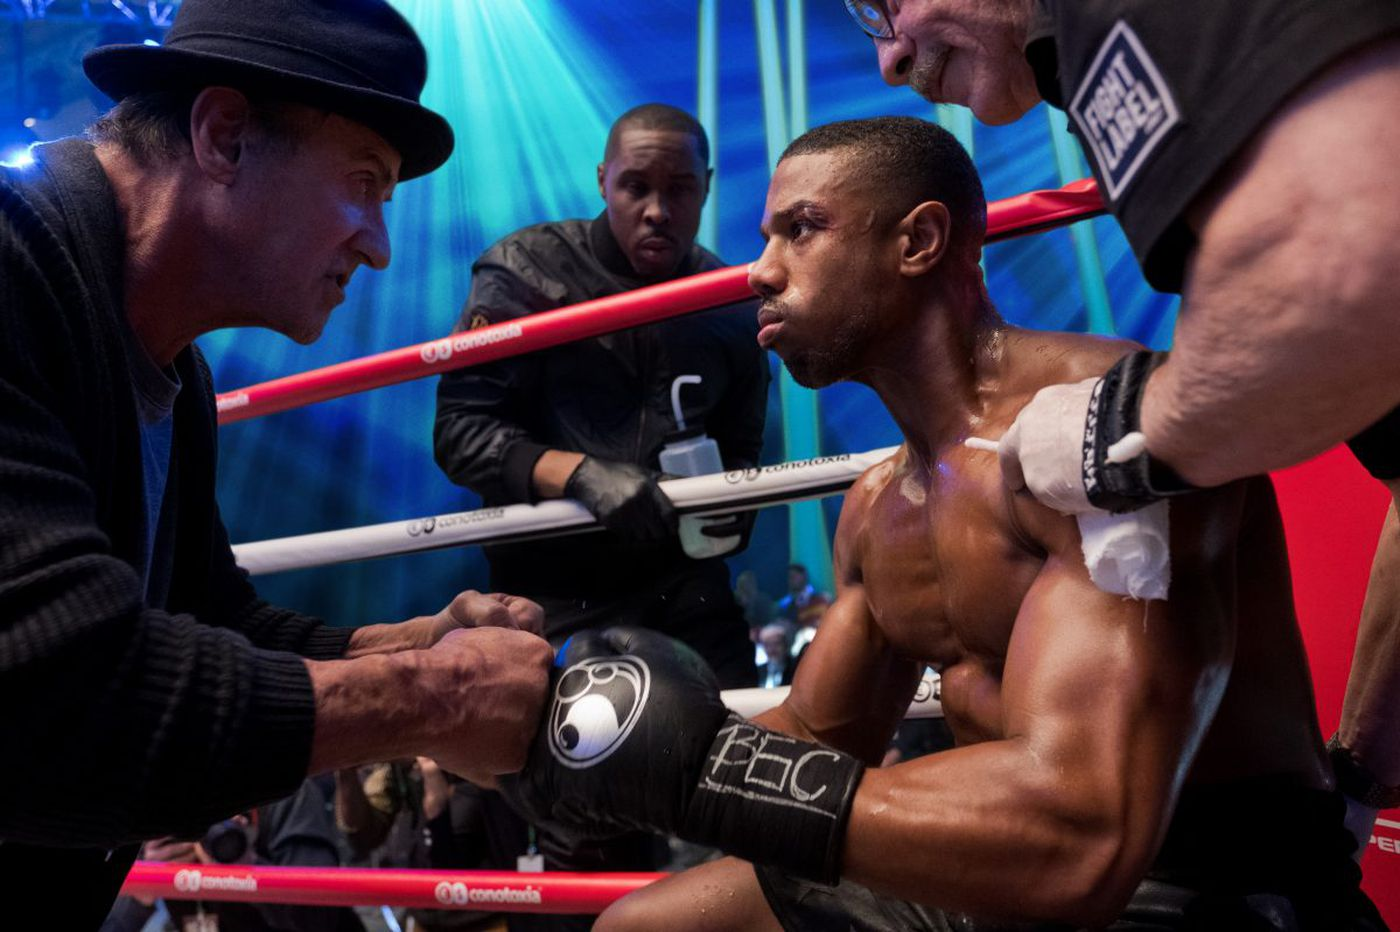 'Creed II' review: Rocky's greatest foe returns in sequel that lacks punch